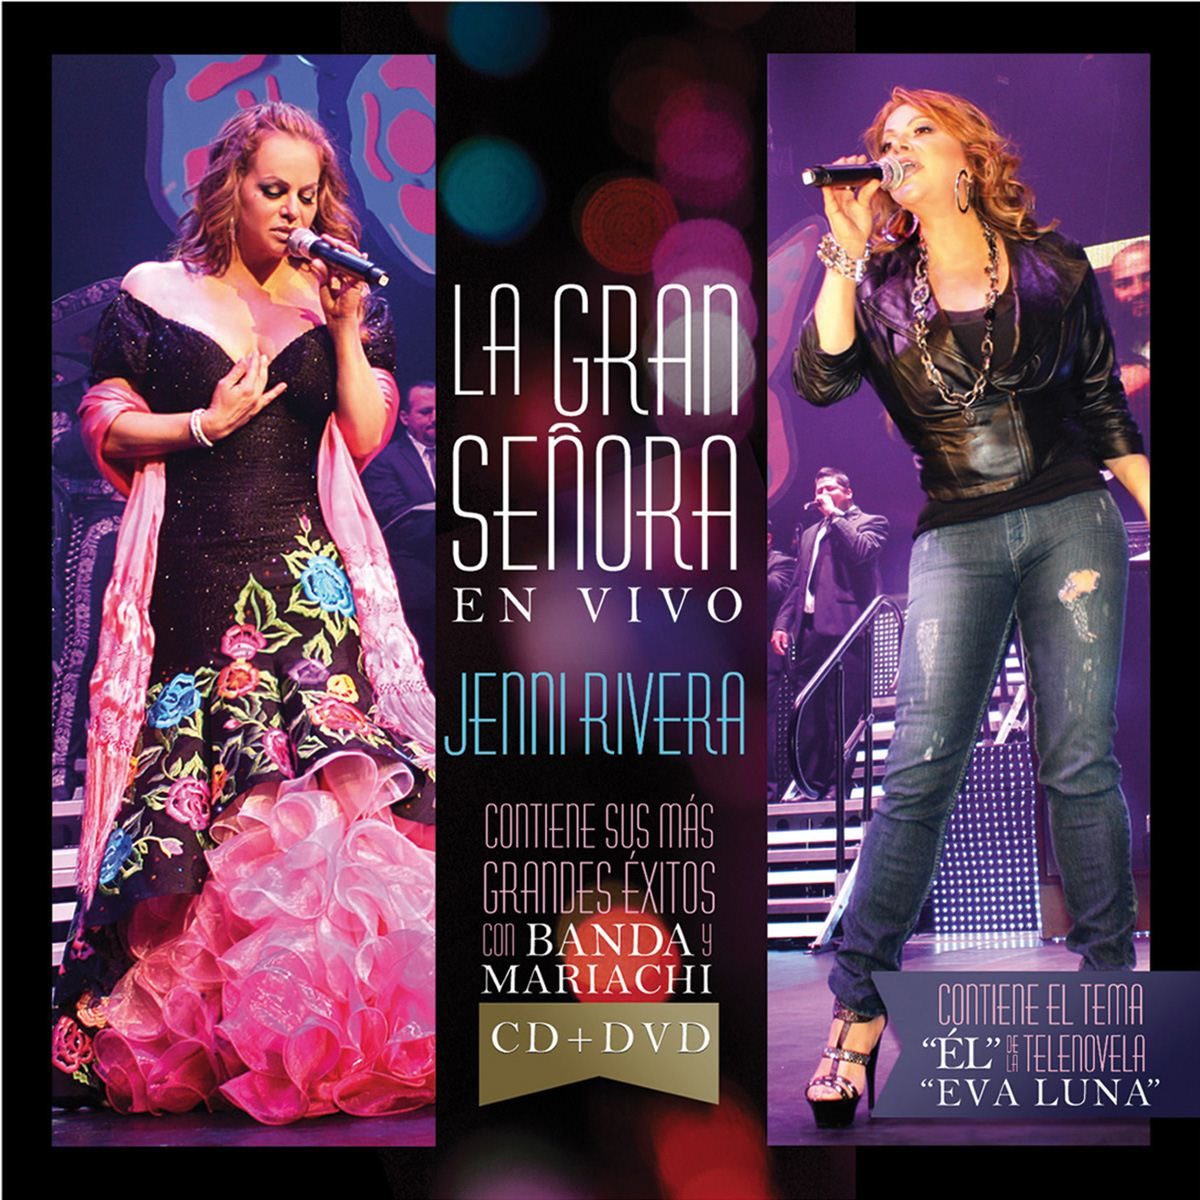 Cd/ dvd jenni rivera- la gran señora (en vivo)  - Sanborns